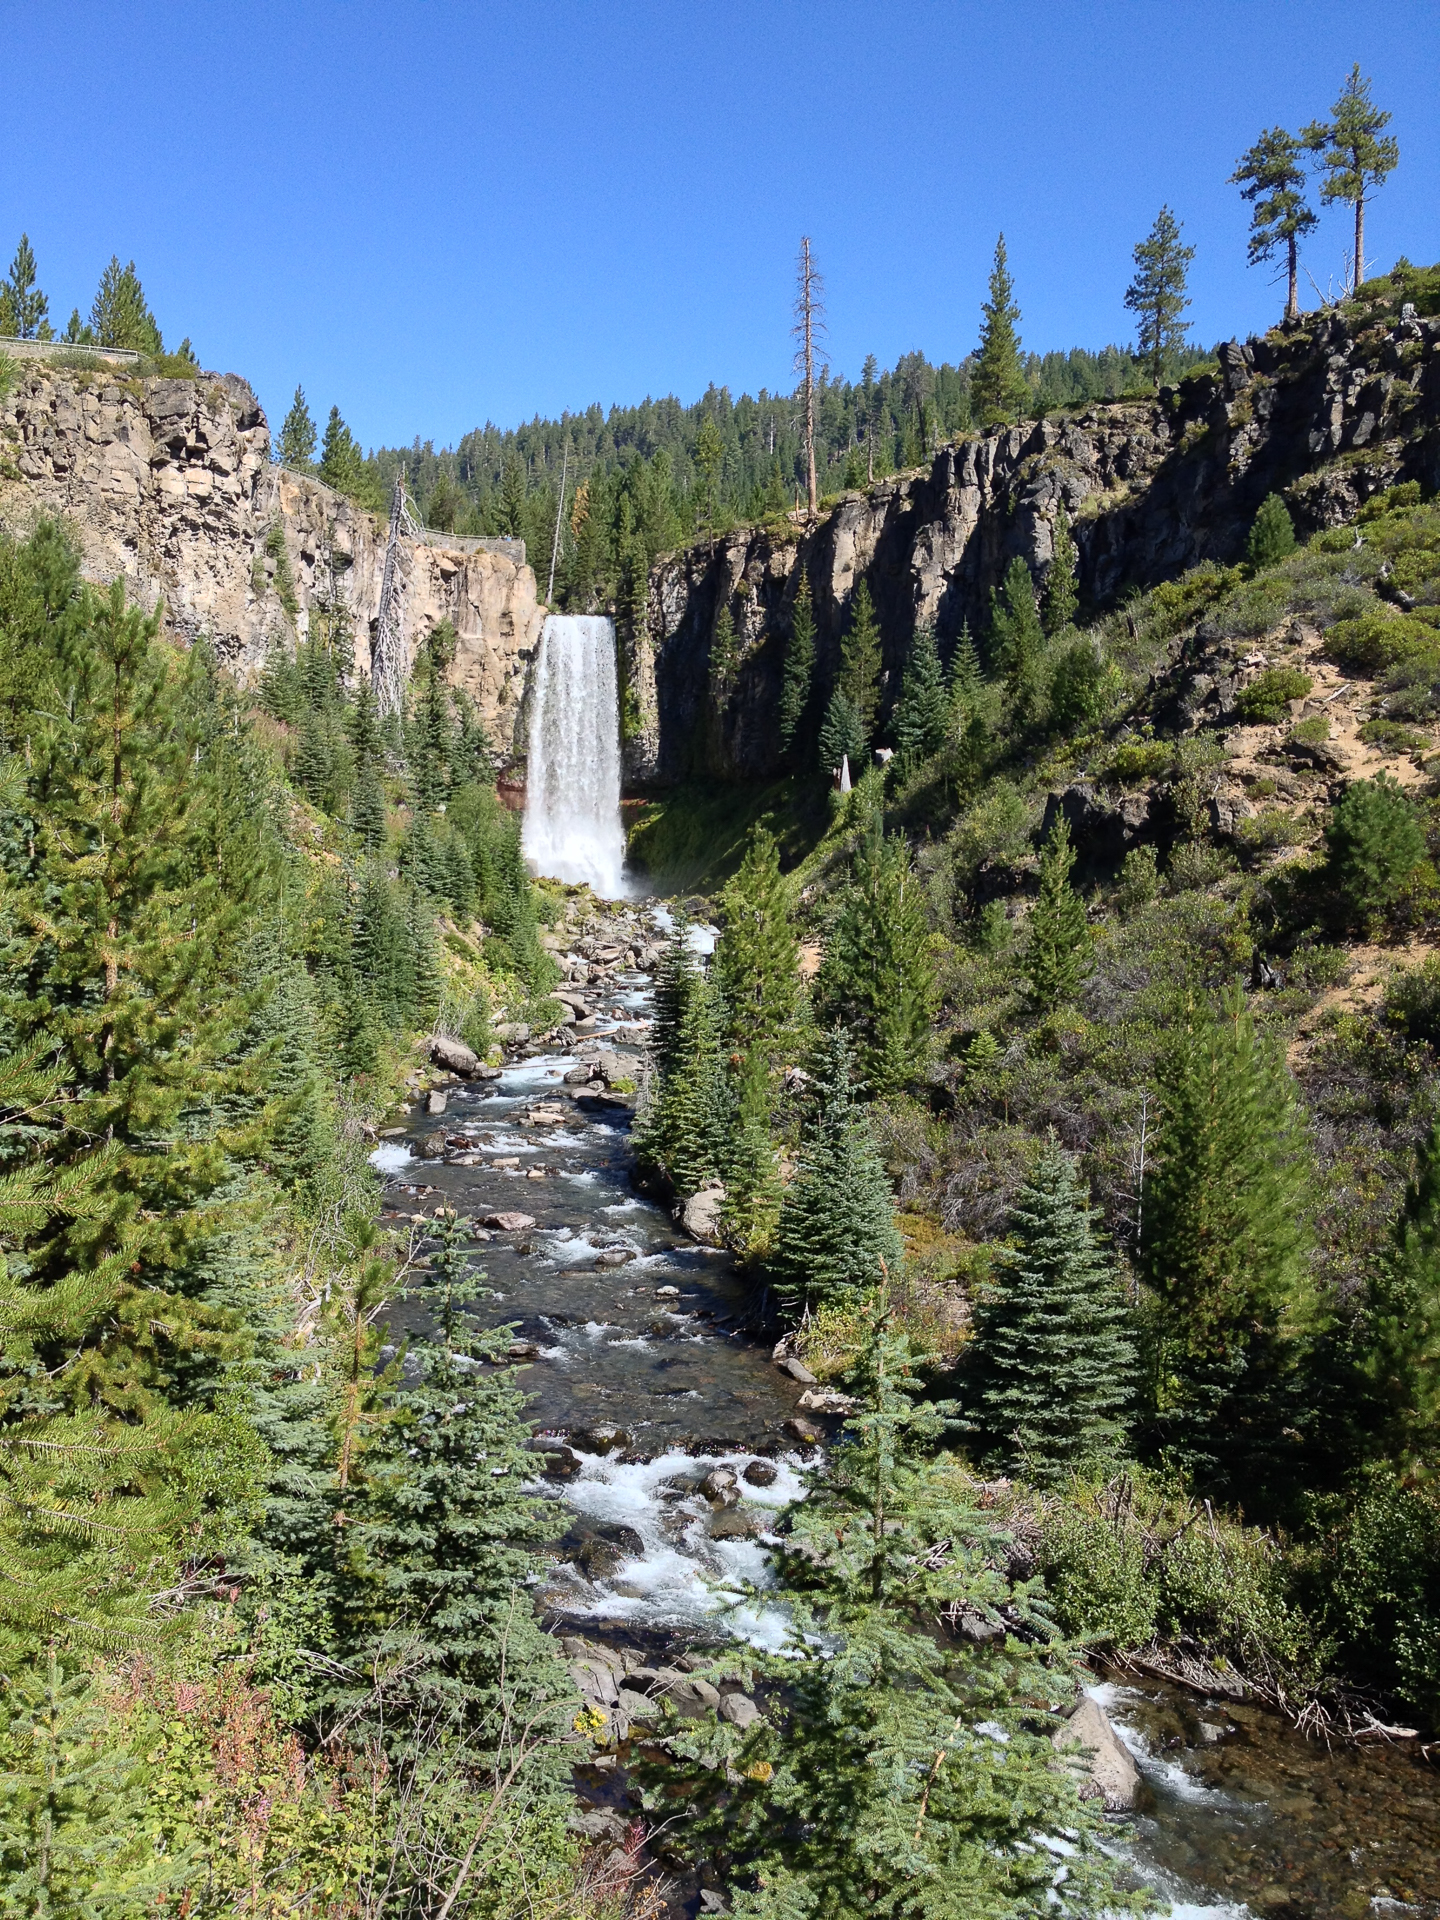 Tumalo Falls, our first rest break.